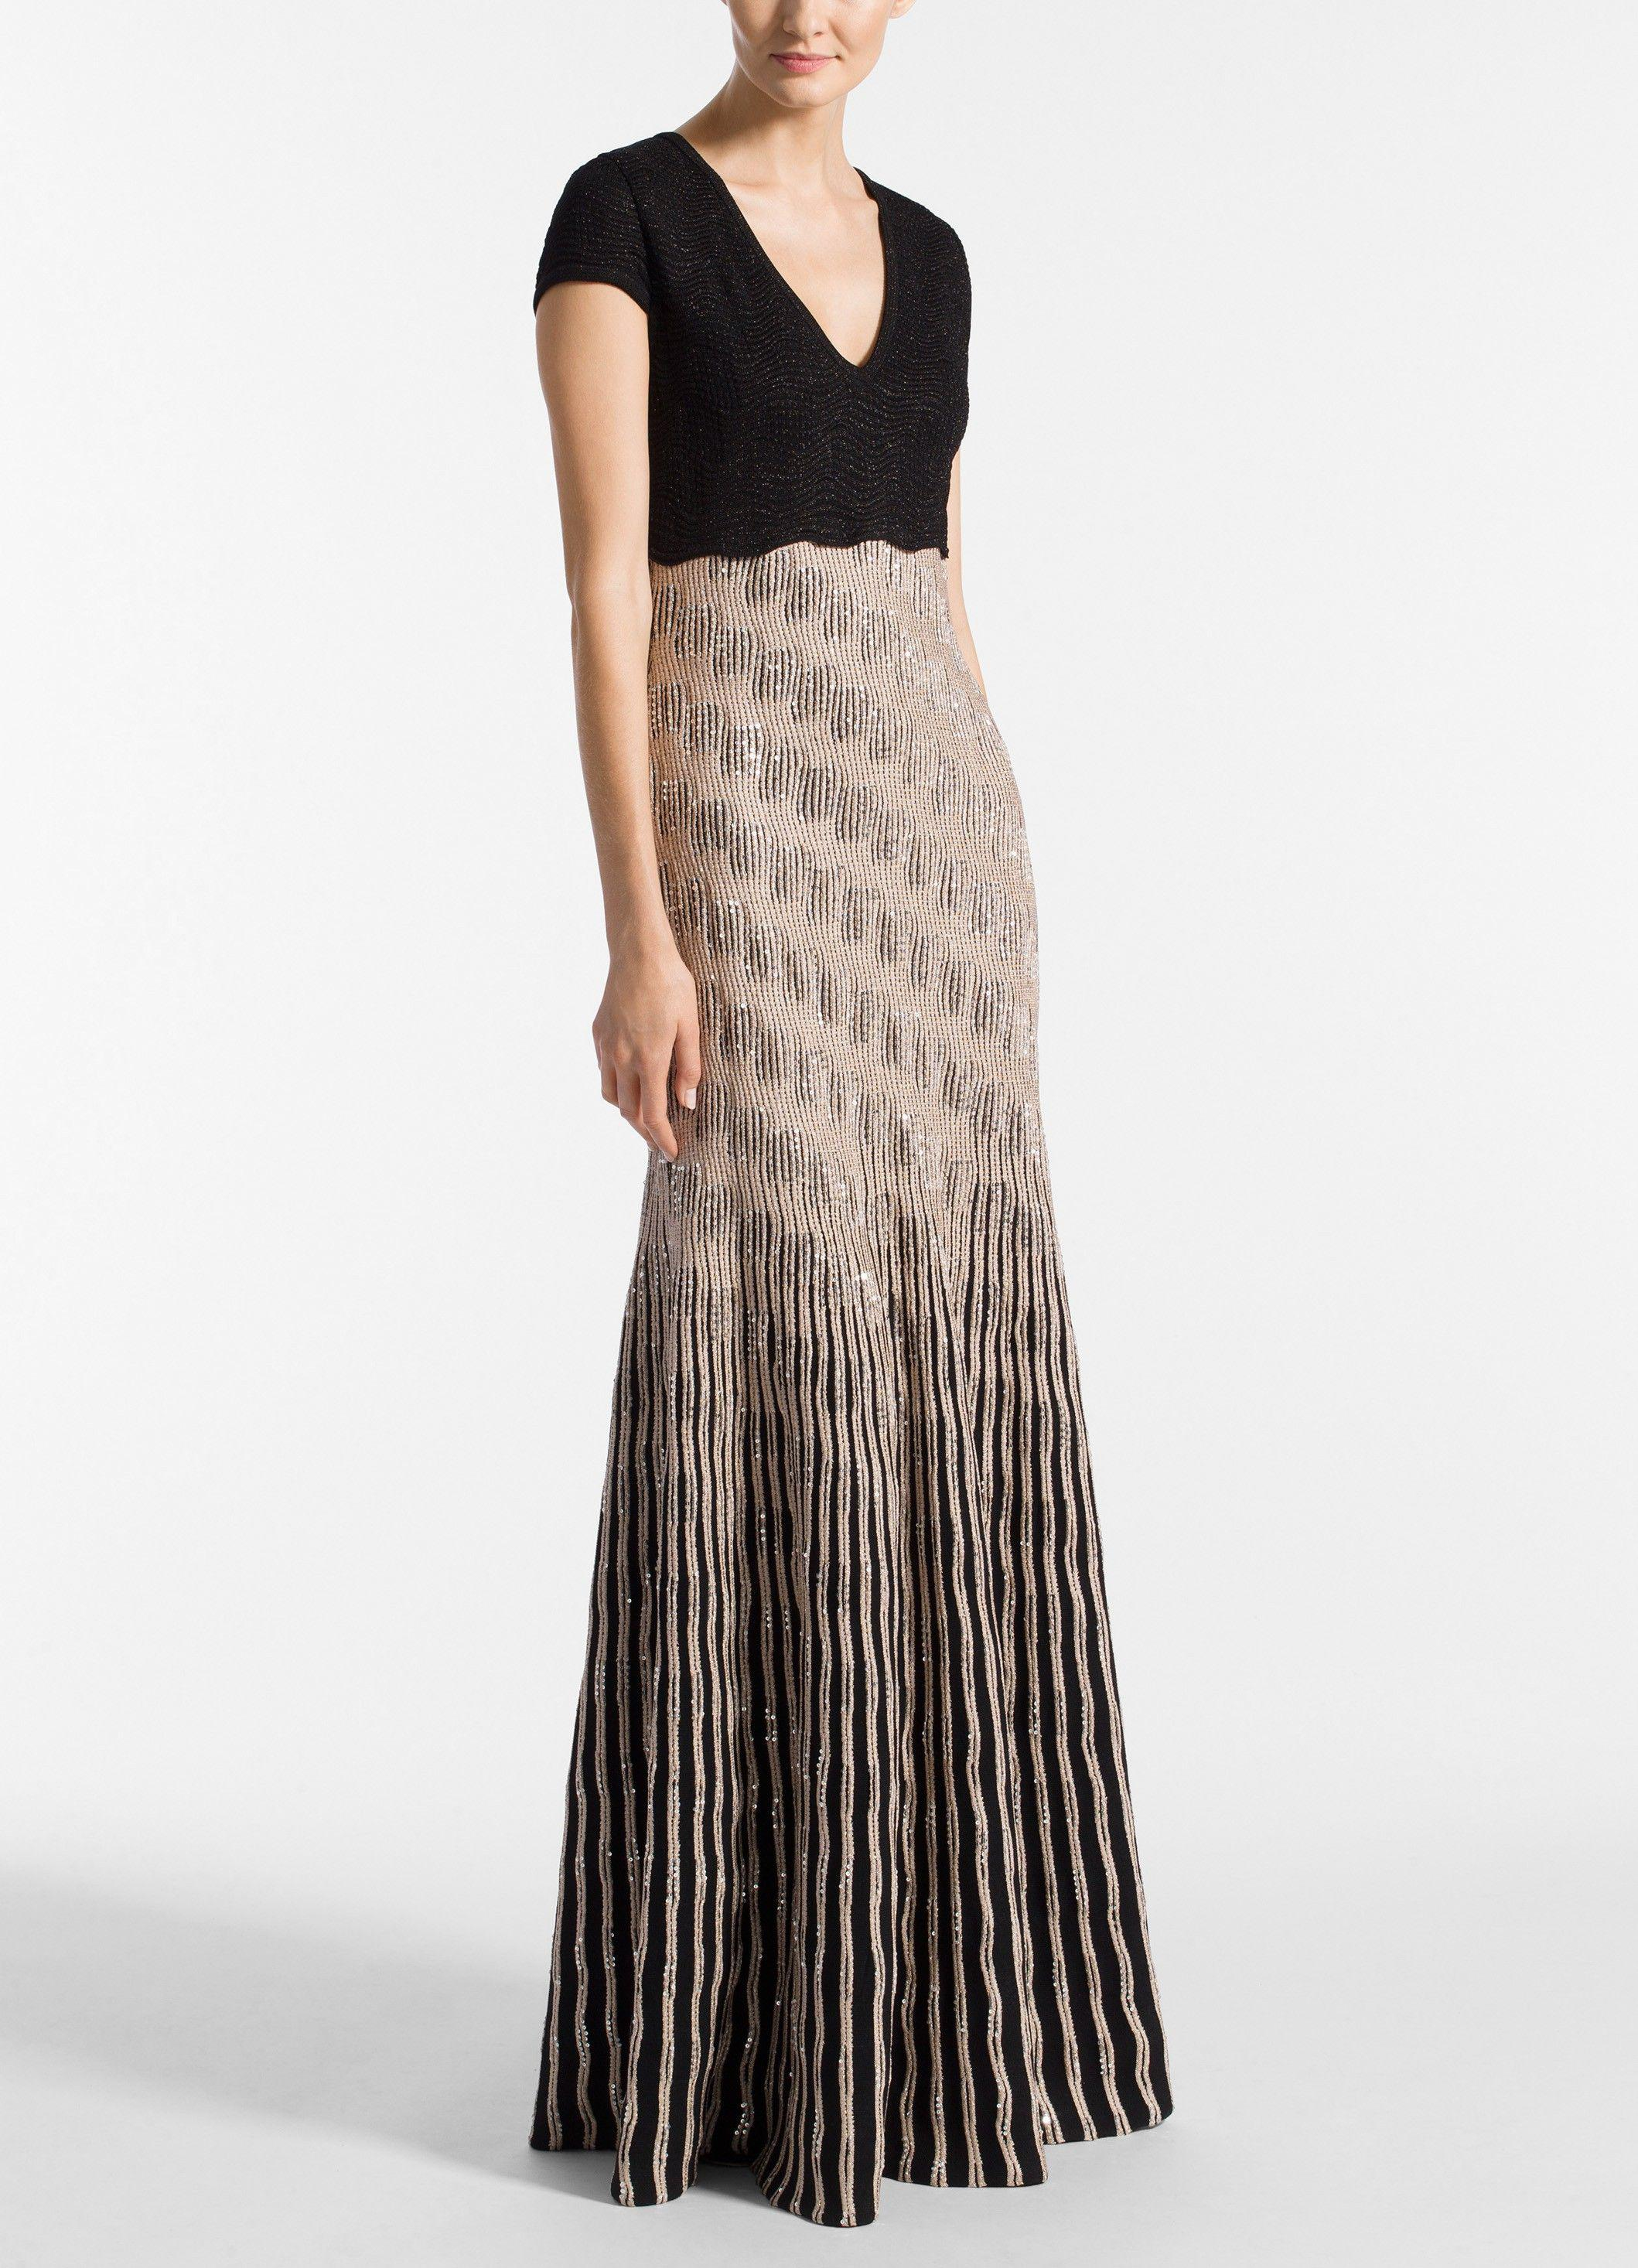 44aa7bcc6e38 St. John - Multicolor Inlay Sequin Trellis Knit V-neck Fit & Flare Gown.  View fullscreen